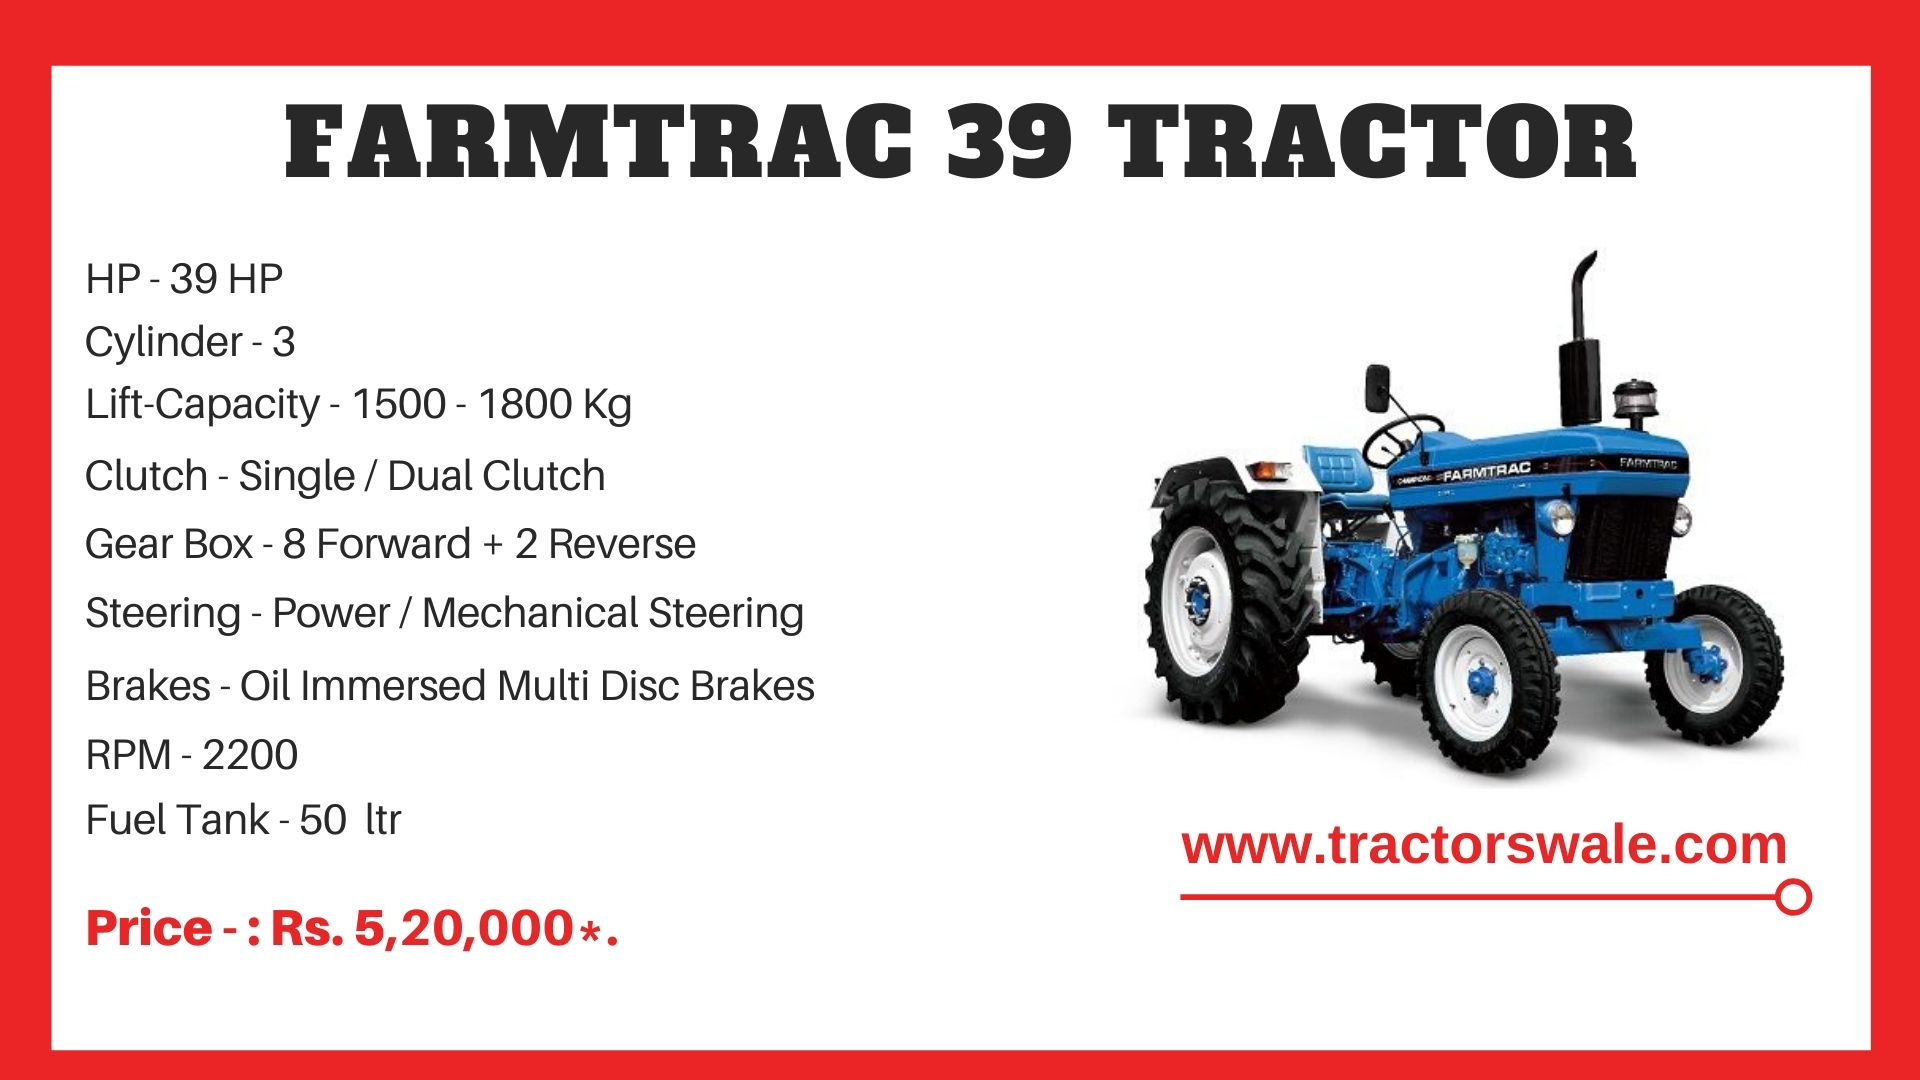 Farmtrac 39 tractor price